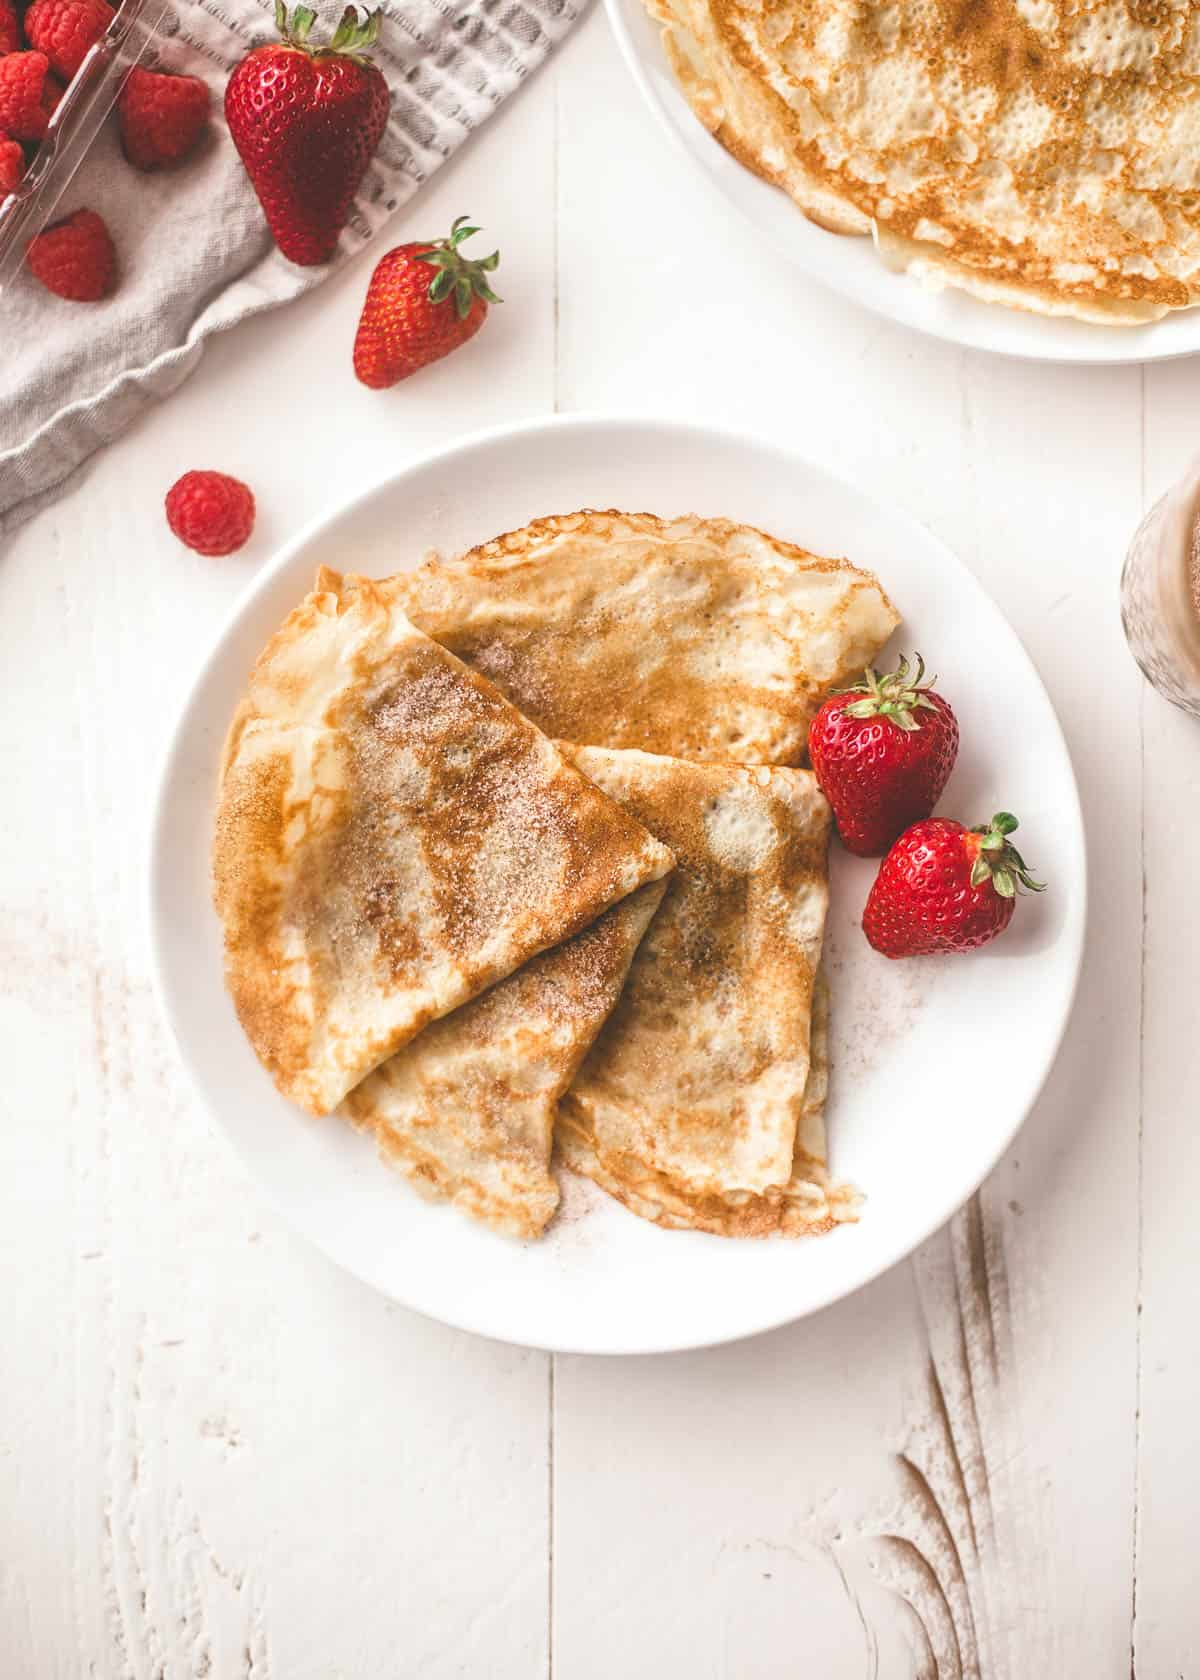 crepes and berries on a white plate